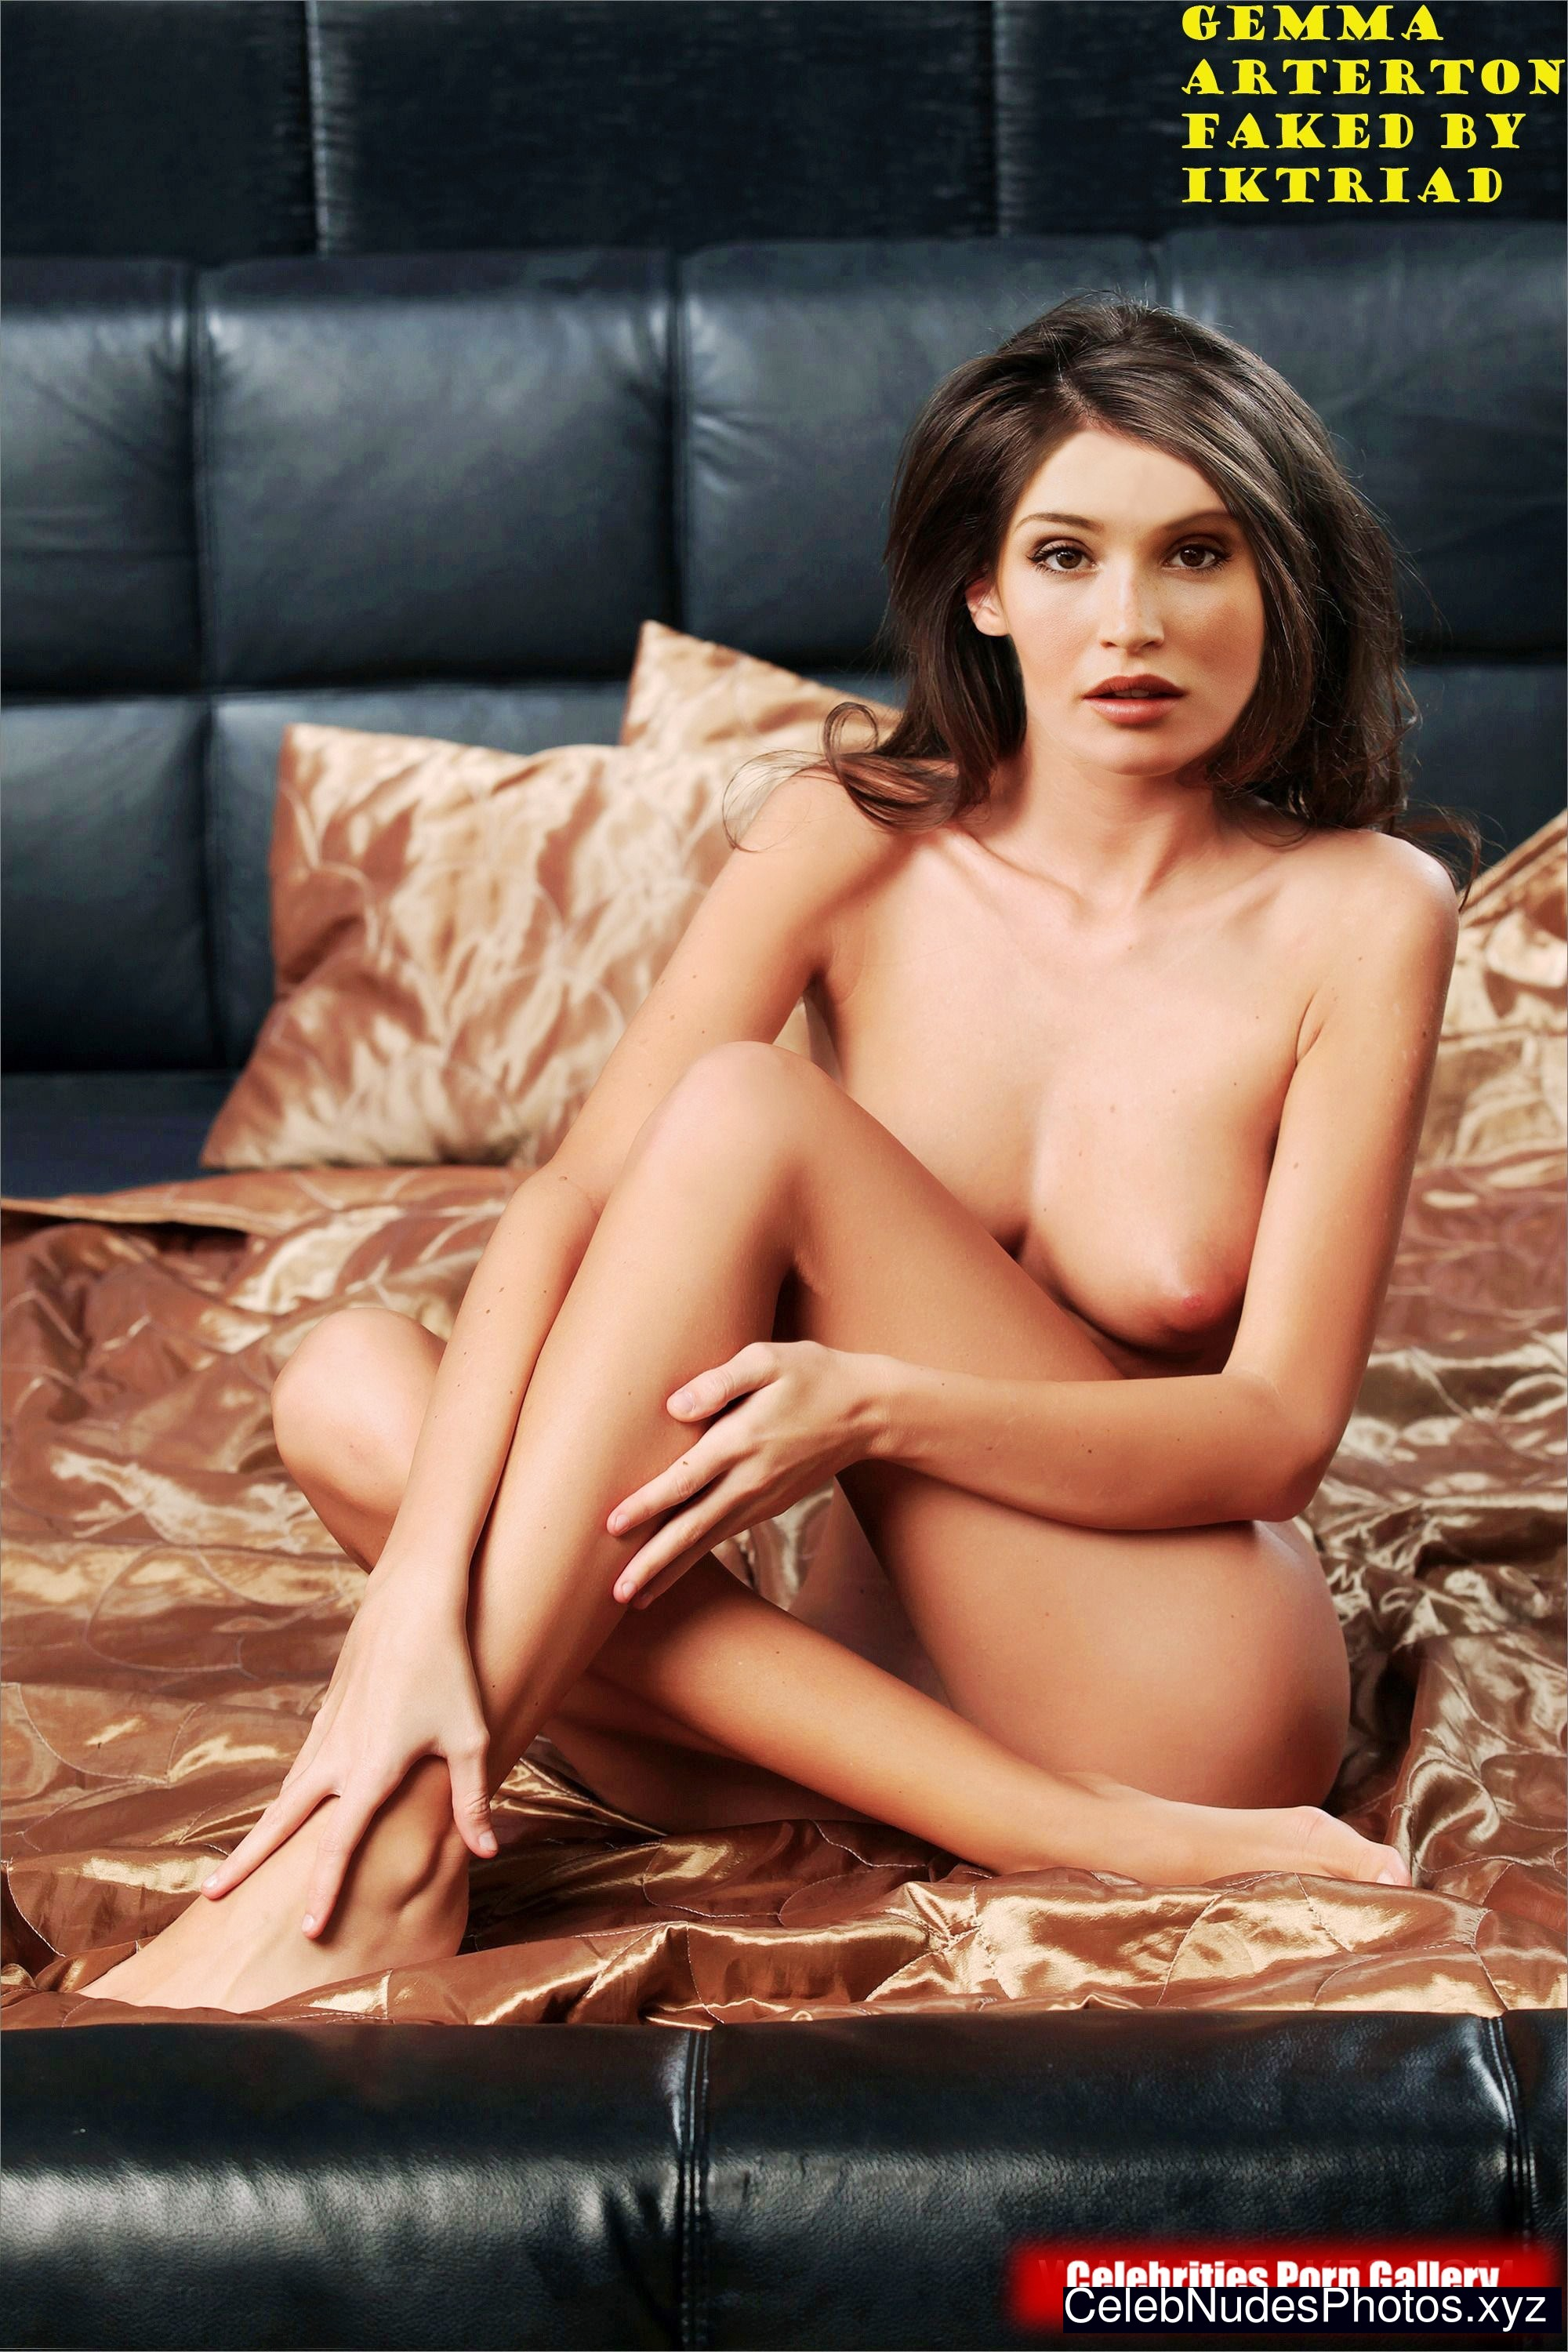 free fake or real nude photos of gemma arterton